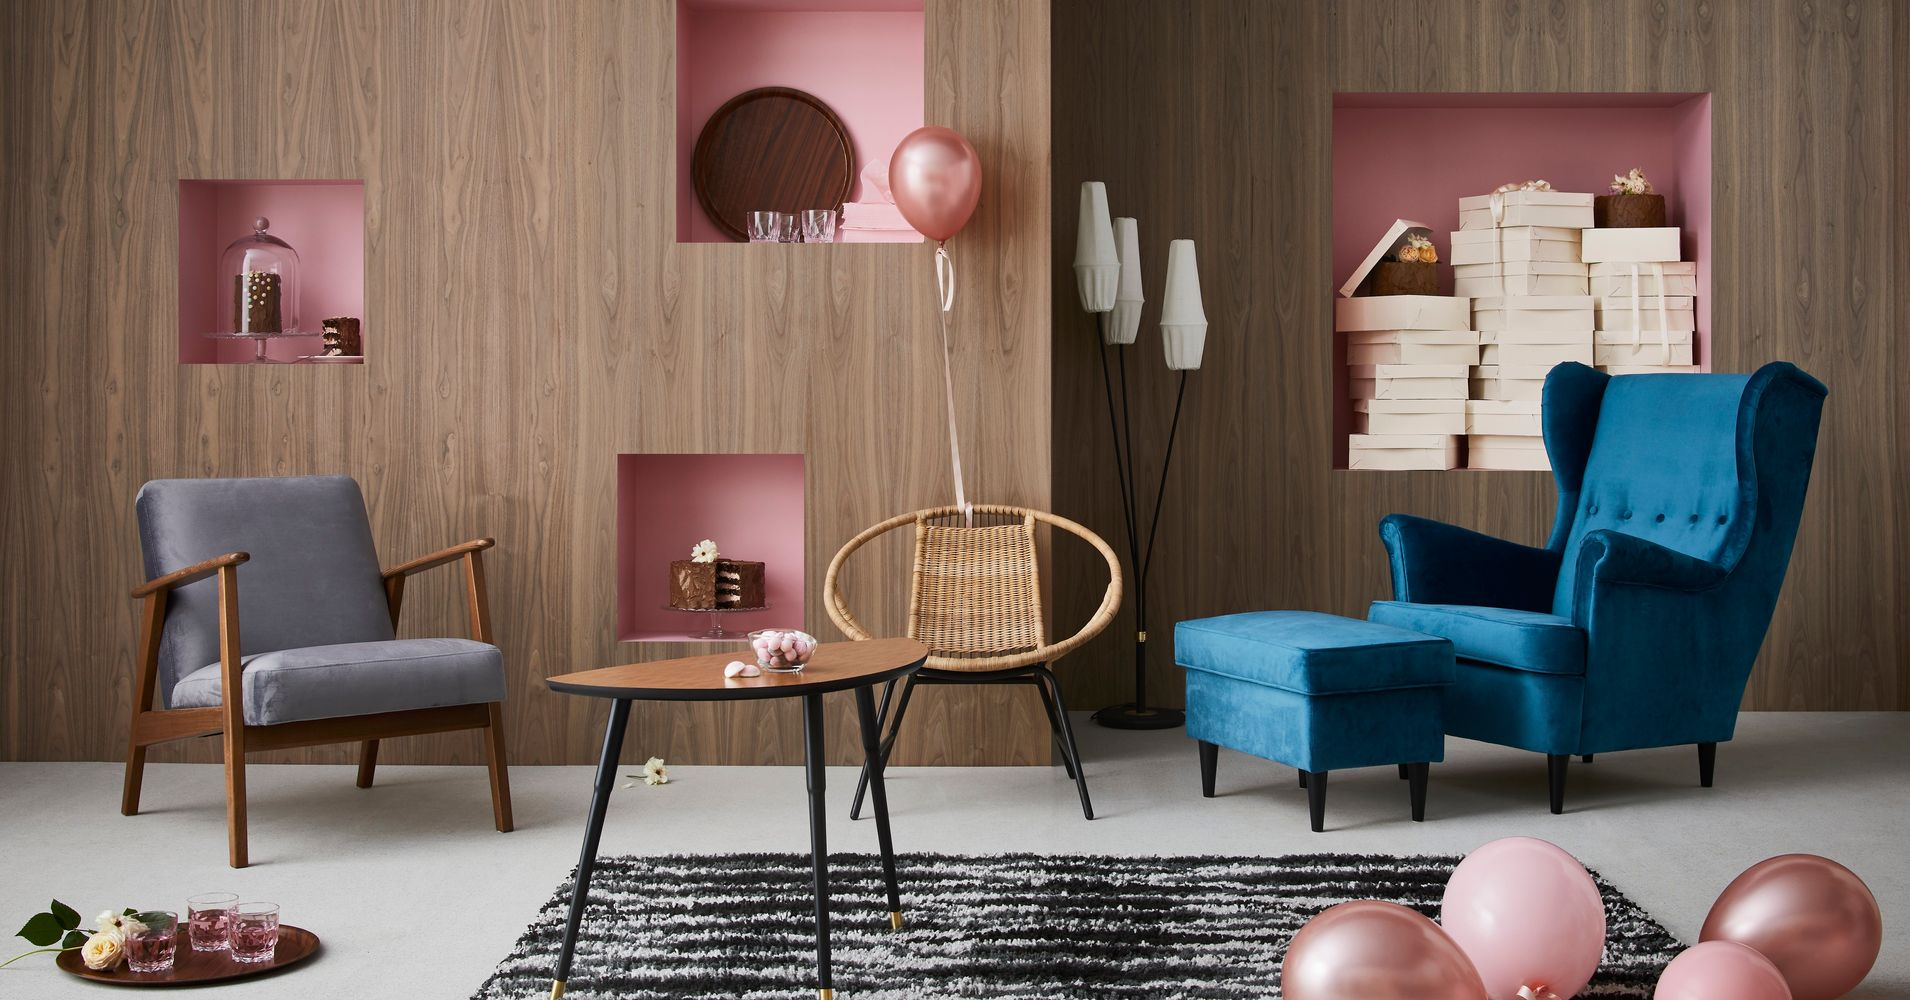 here 39 s your first look at ikea 39 s 2019 catalog huffpost life. Black Bedroom Furniture Sets. Home Design Ideas